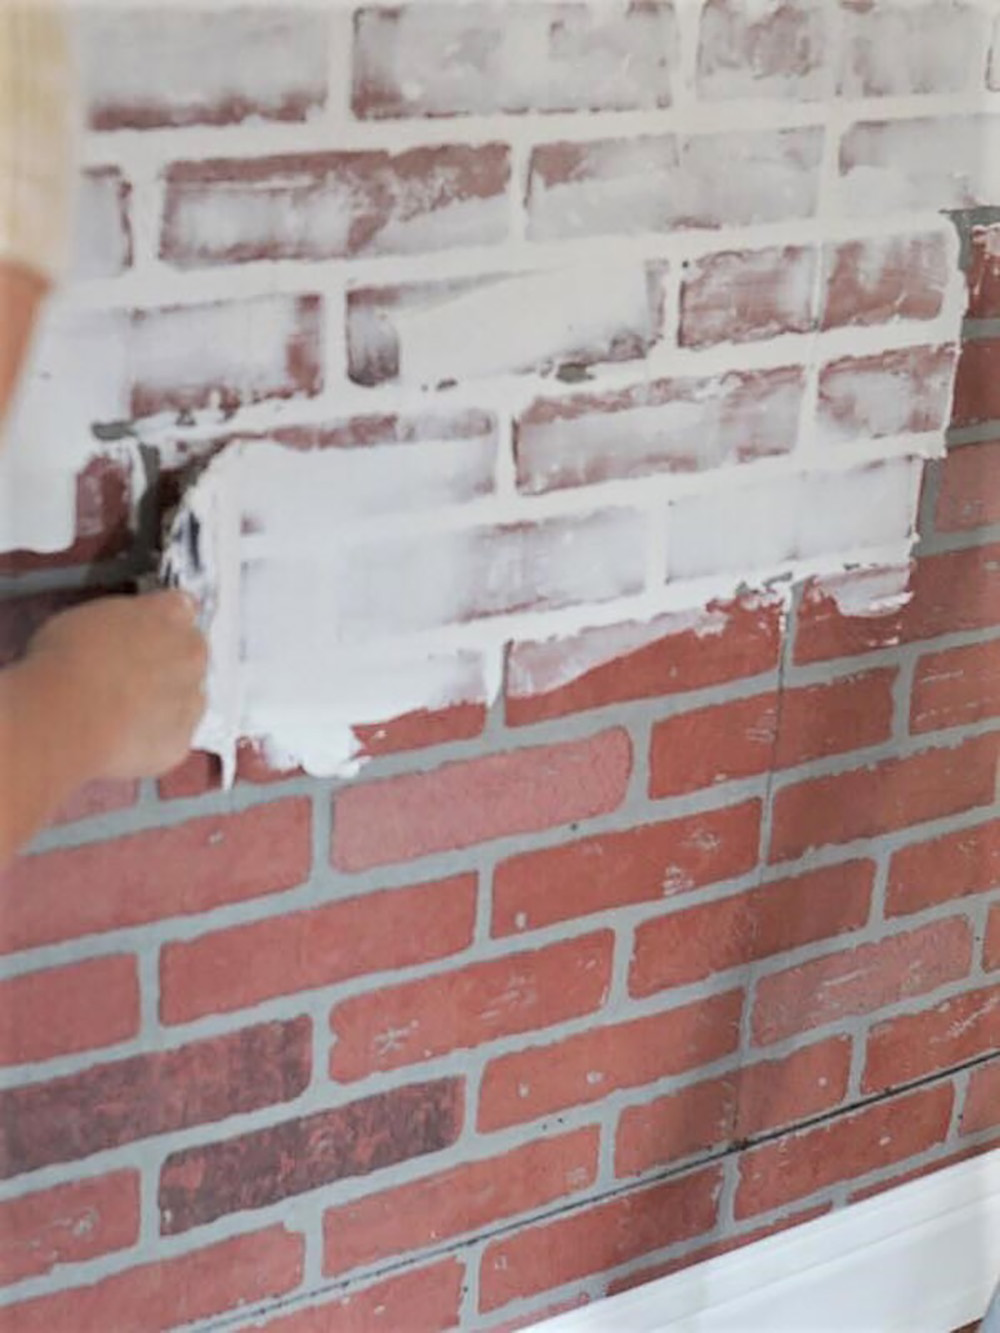 A person smears joint compound on a faux brick wall with a large putty knife.